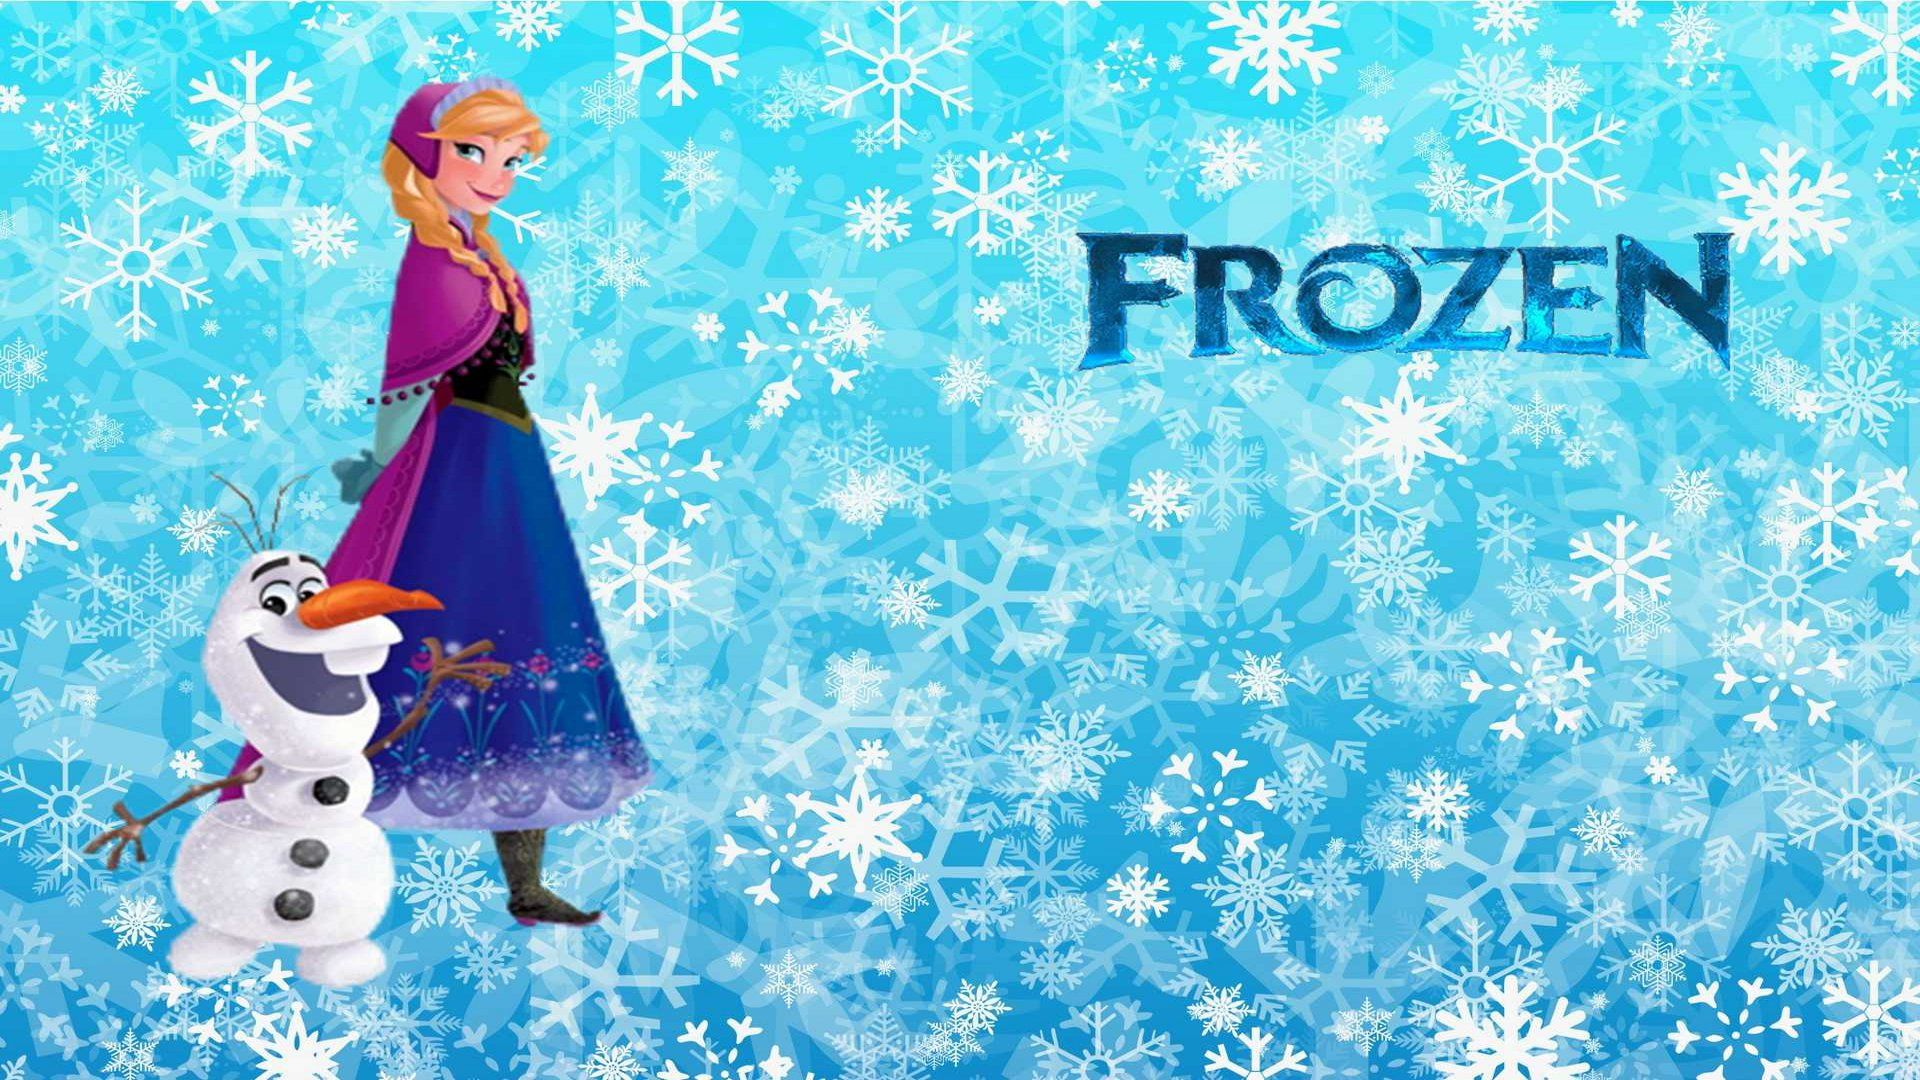 Anna Frozen Movie Wallpaper